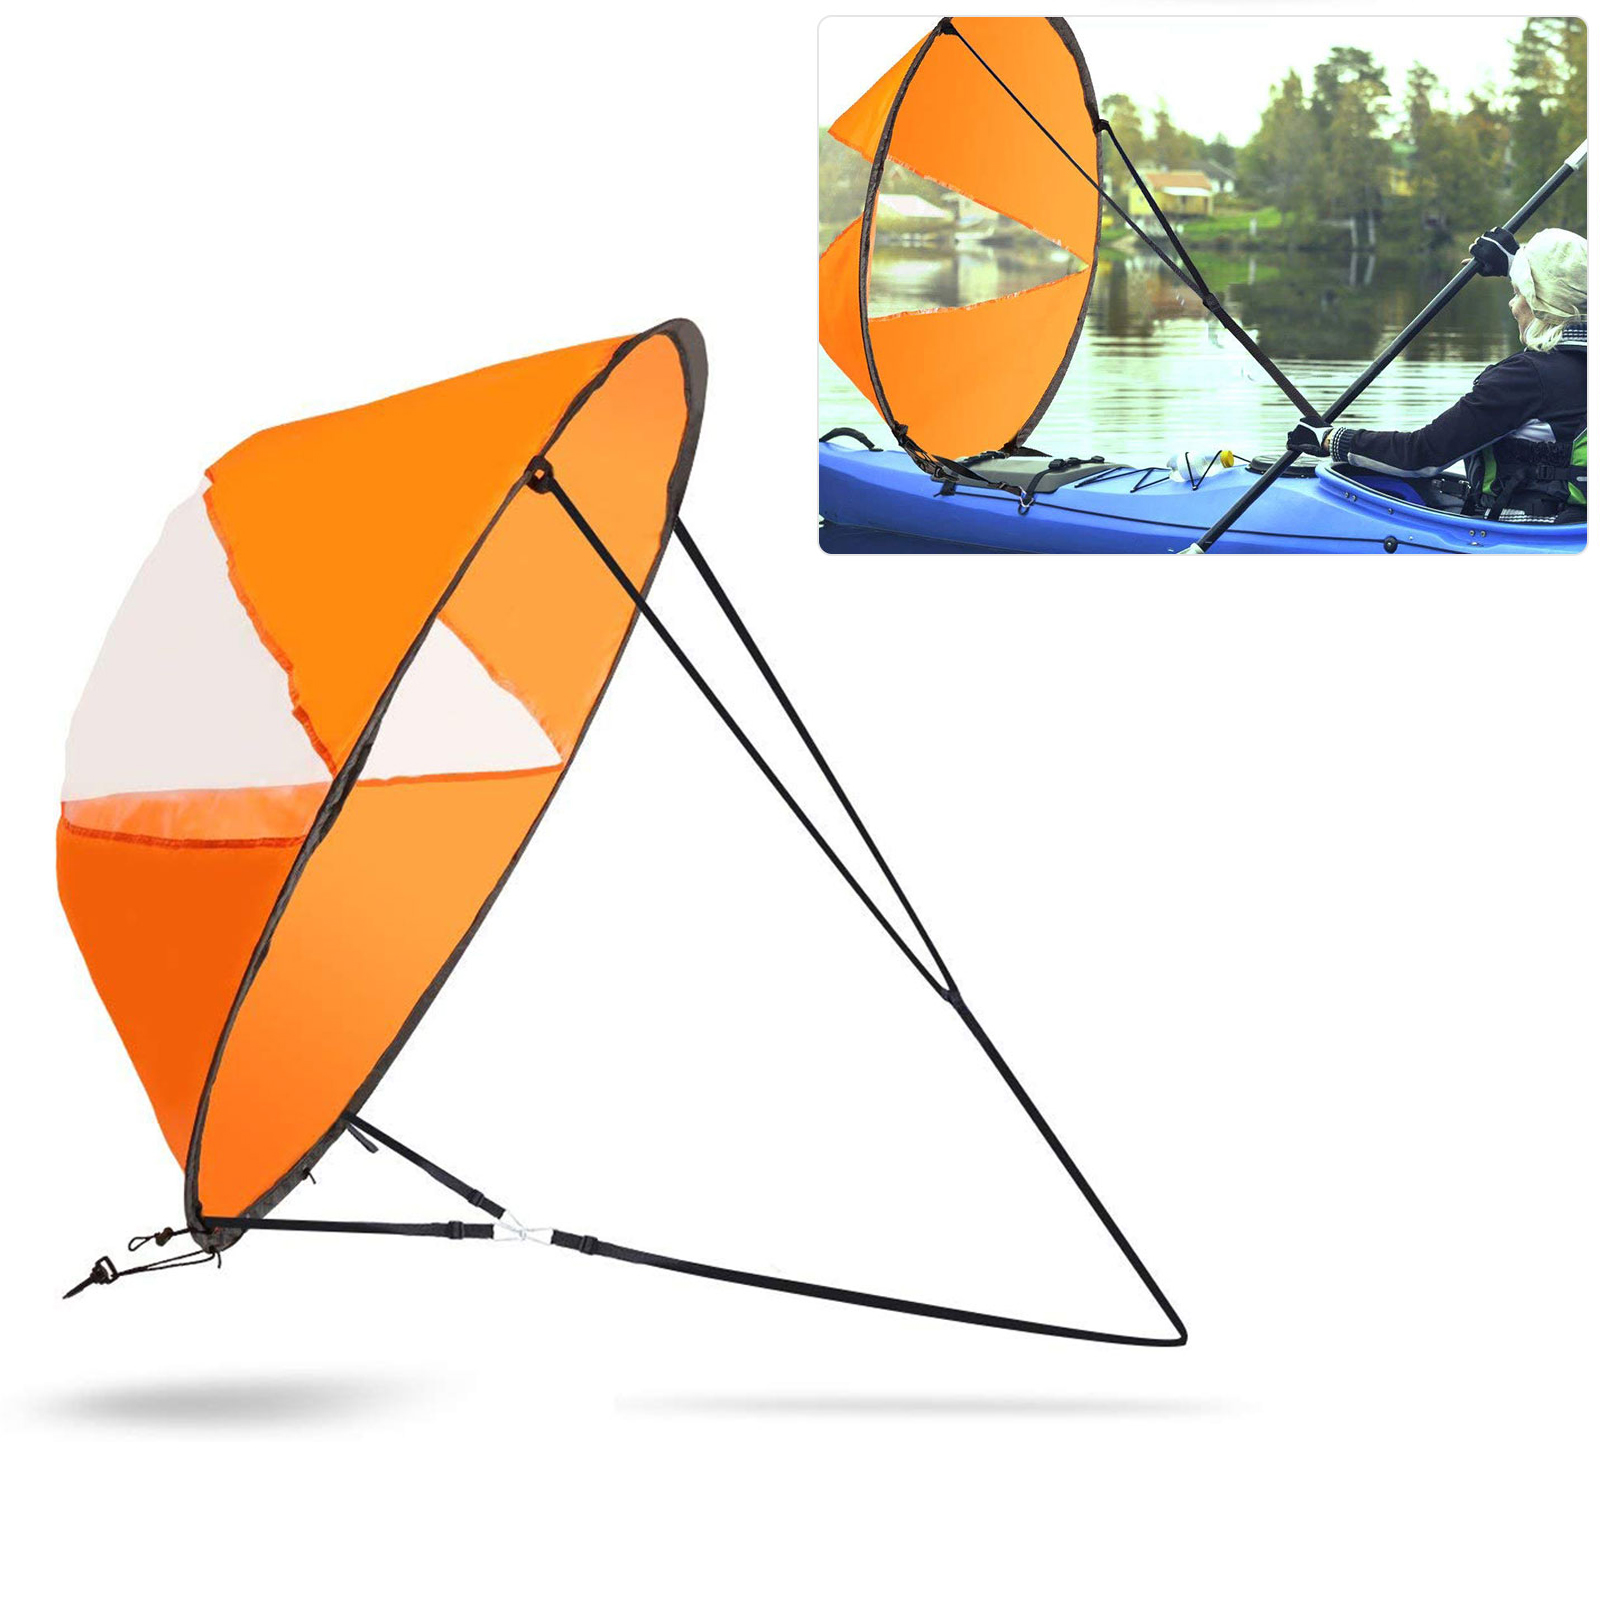 hight resolution of eeekit 42 kayak boat wind sail foldable kayak wind paddle kit sup sailboat paddle board sailing windpaddle canoe instant sail accessories durable surfing